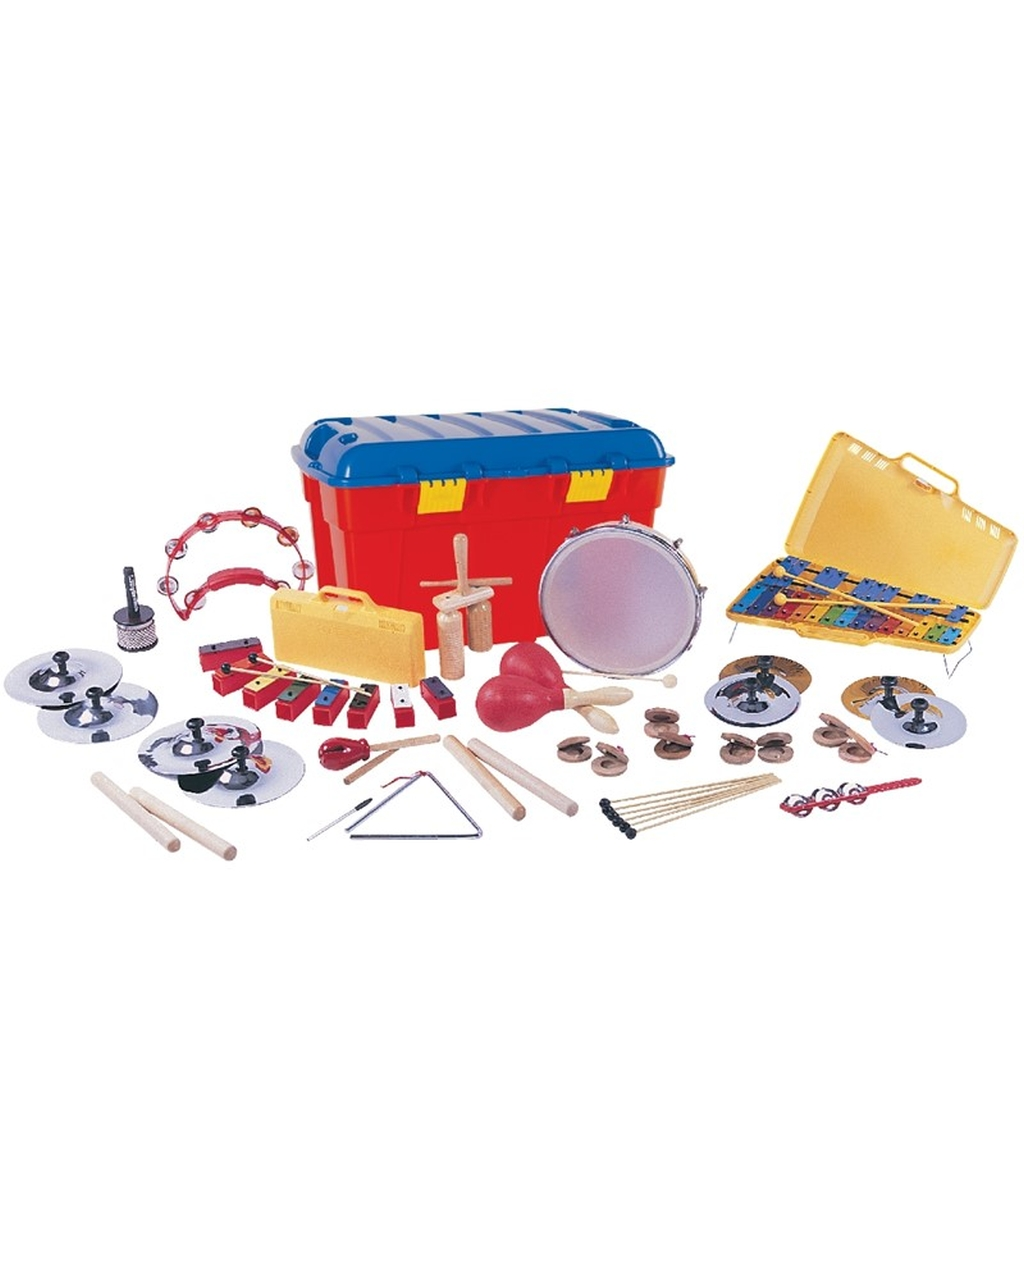 KS2 Percussion Set